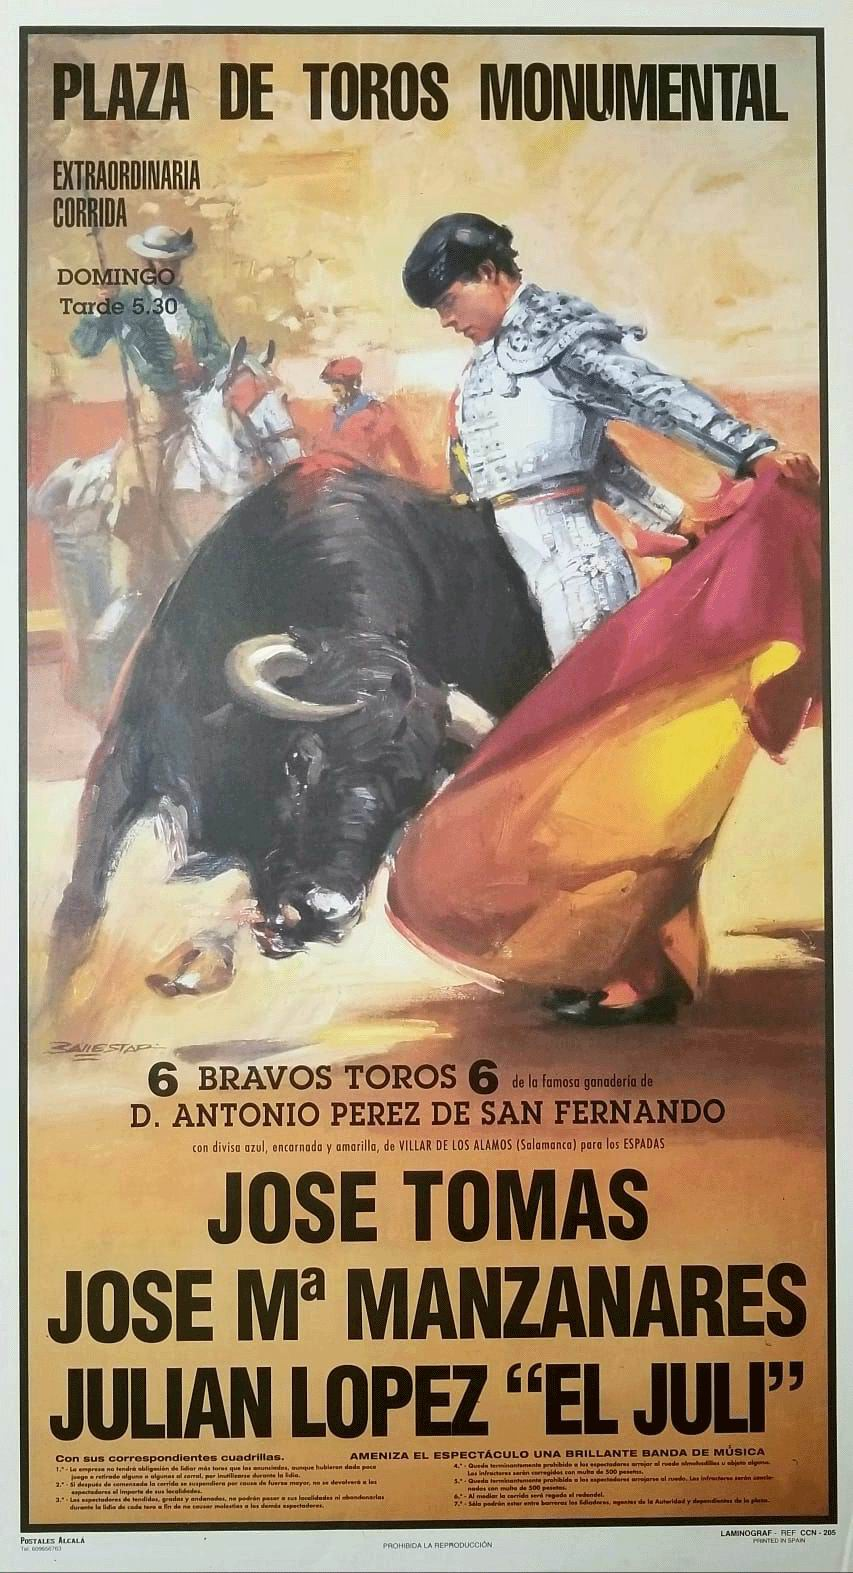 Poster of the Monumental bullring of Madrid. Bullfighters José Tomás, José Mª Manzanares, Julian López